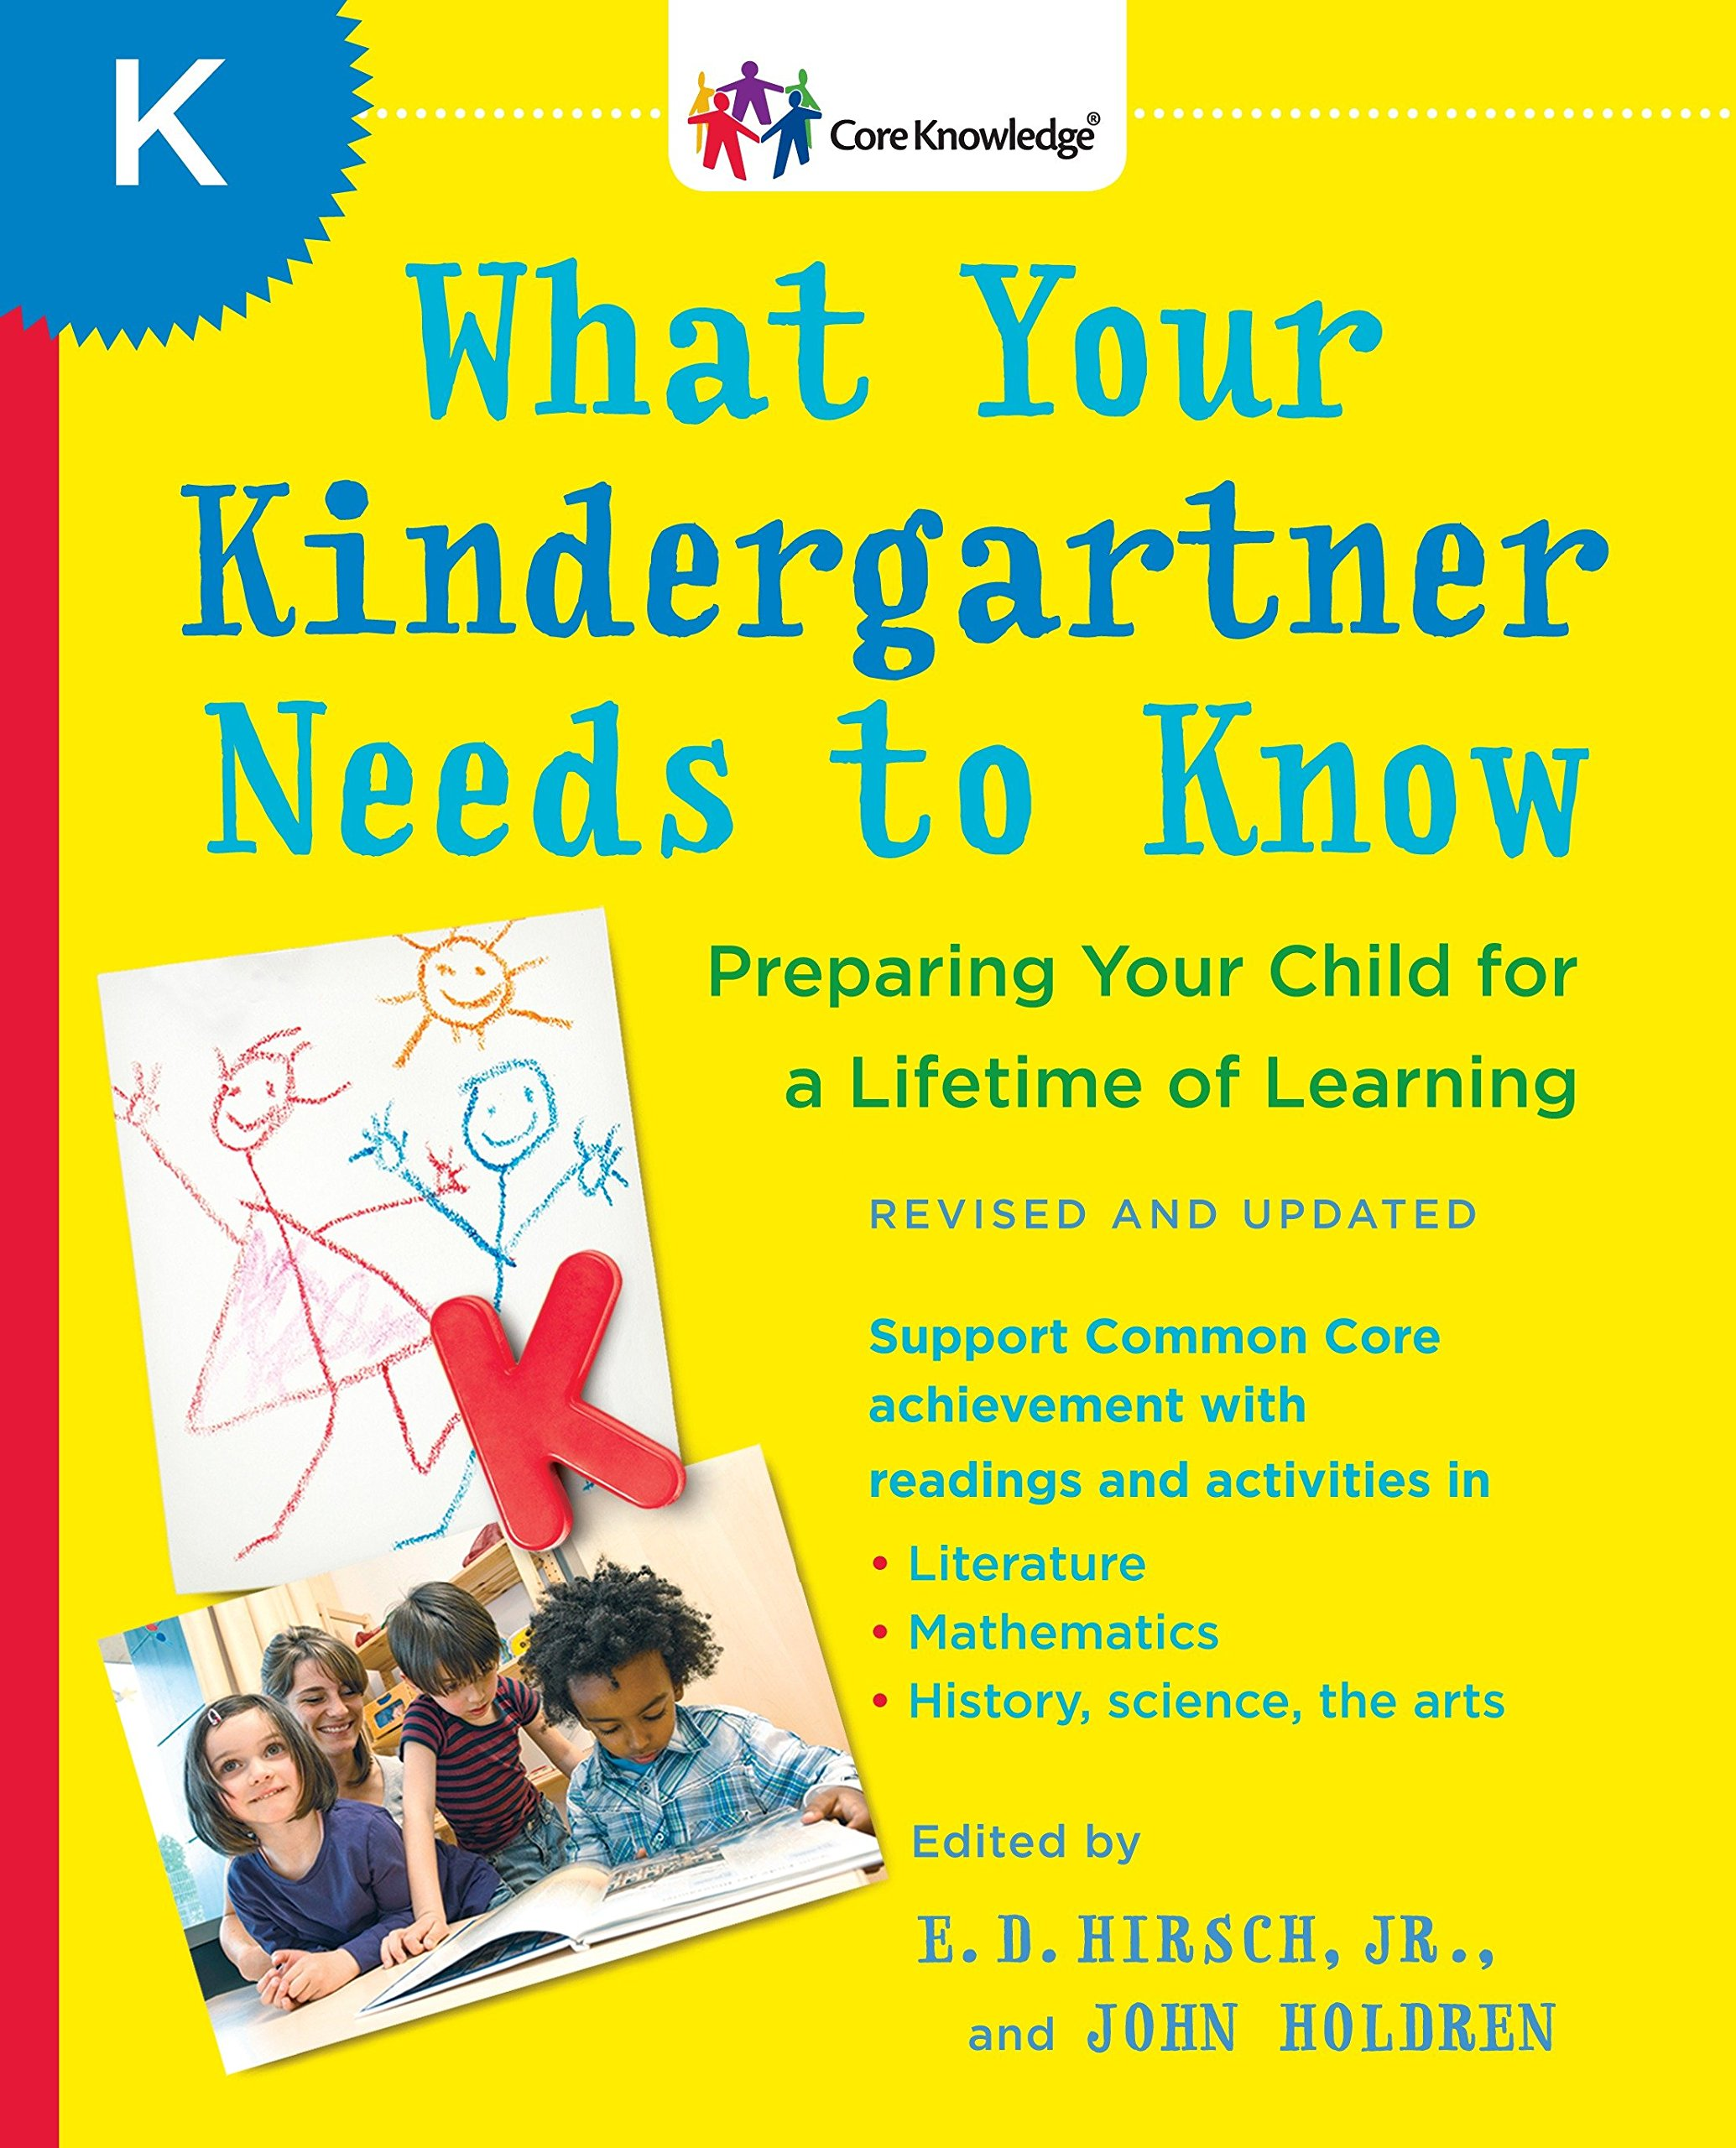 What Your Kindergartner Needs to Know (Revised and updated): Preparing Your  Child for a Lifetime of Learning (The Core Knowledge Series): E.D. Hirsch  Jr., ...